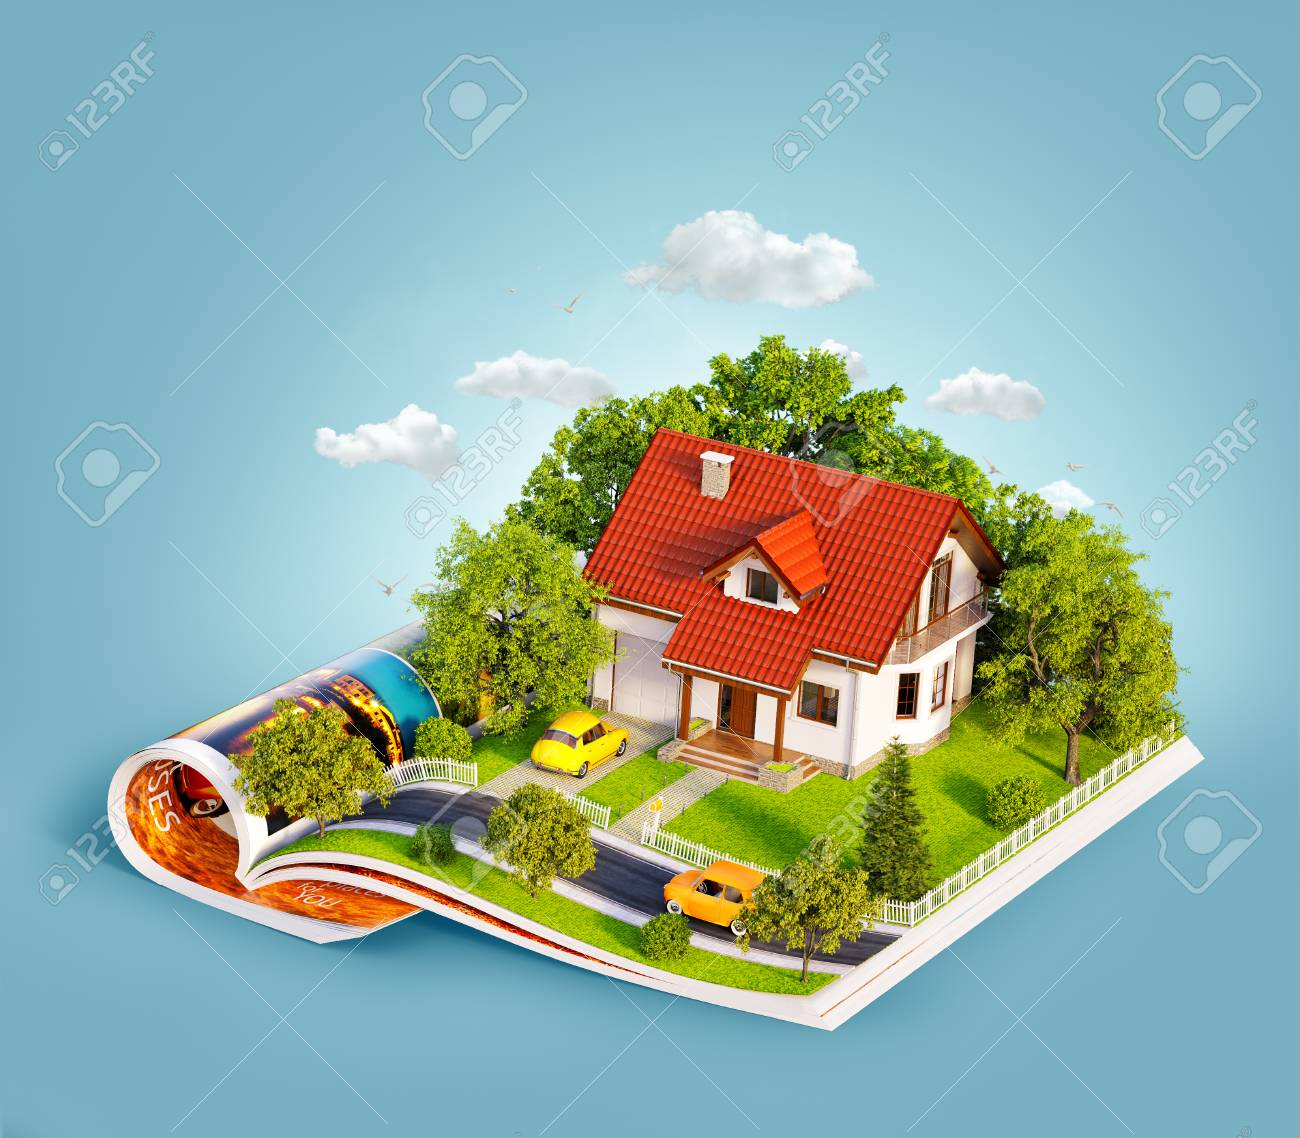 White house of dream with white fence, garden and trees on opened pages of magazine. Unusual 3d illustration. Travel and camping concept - 96080723